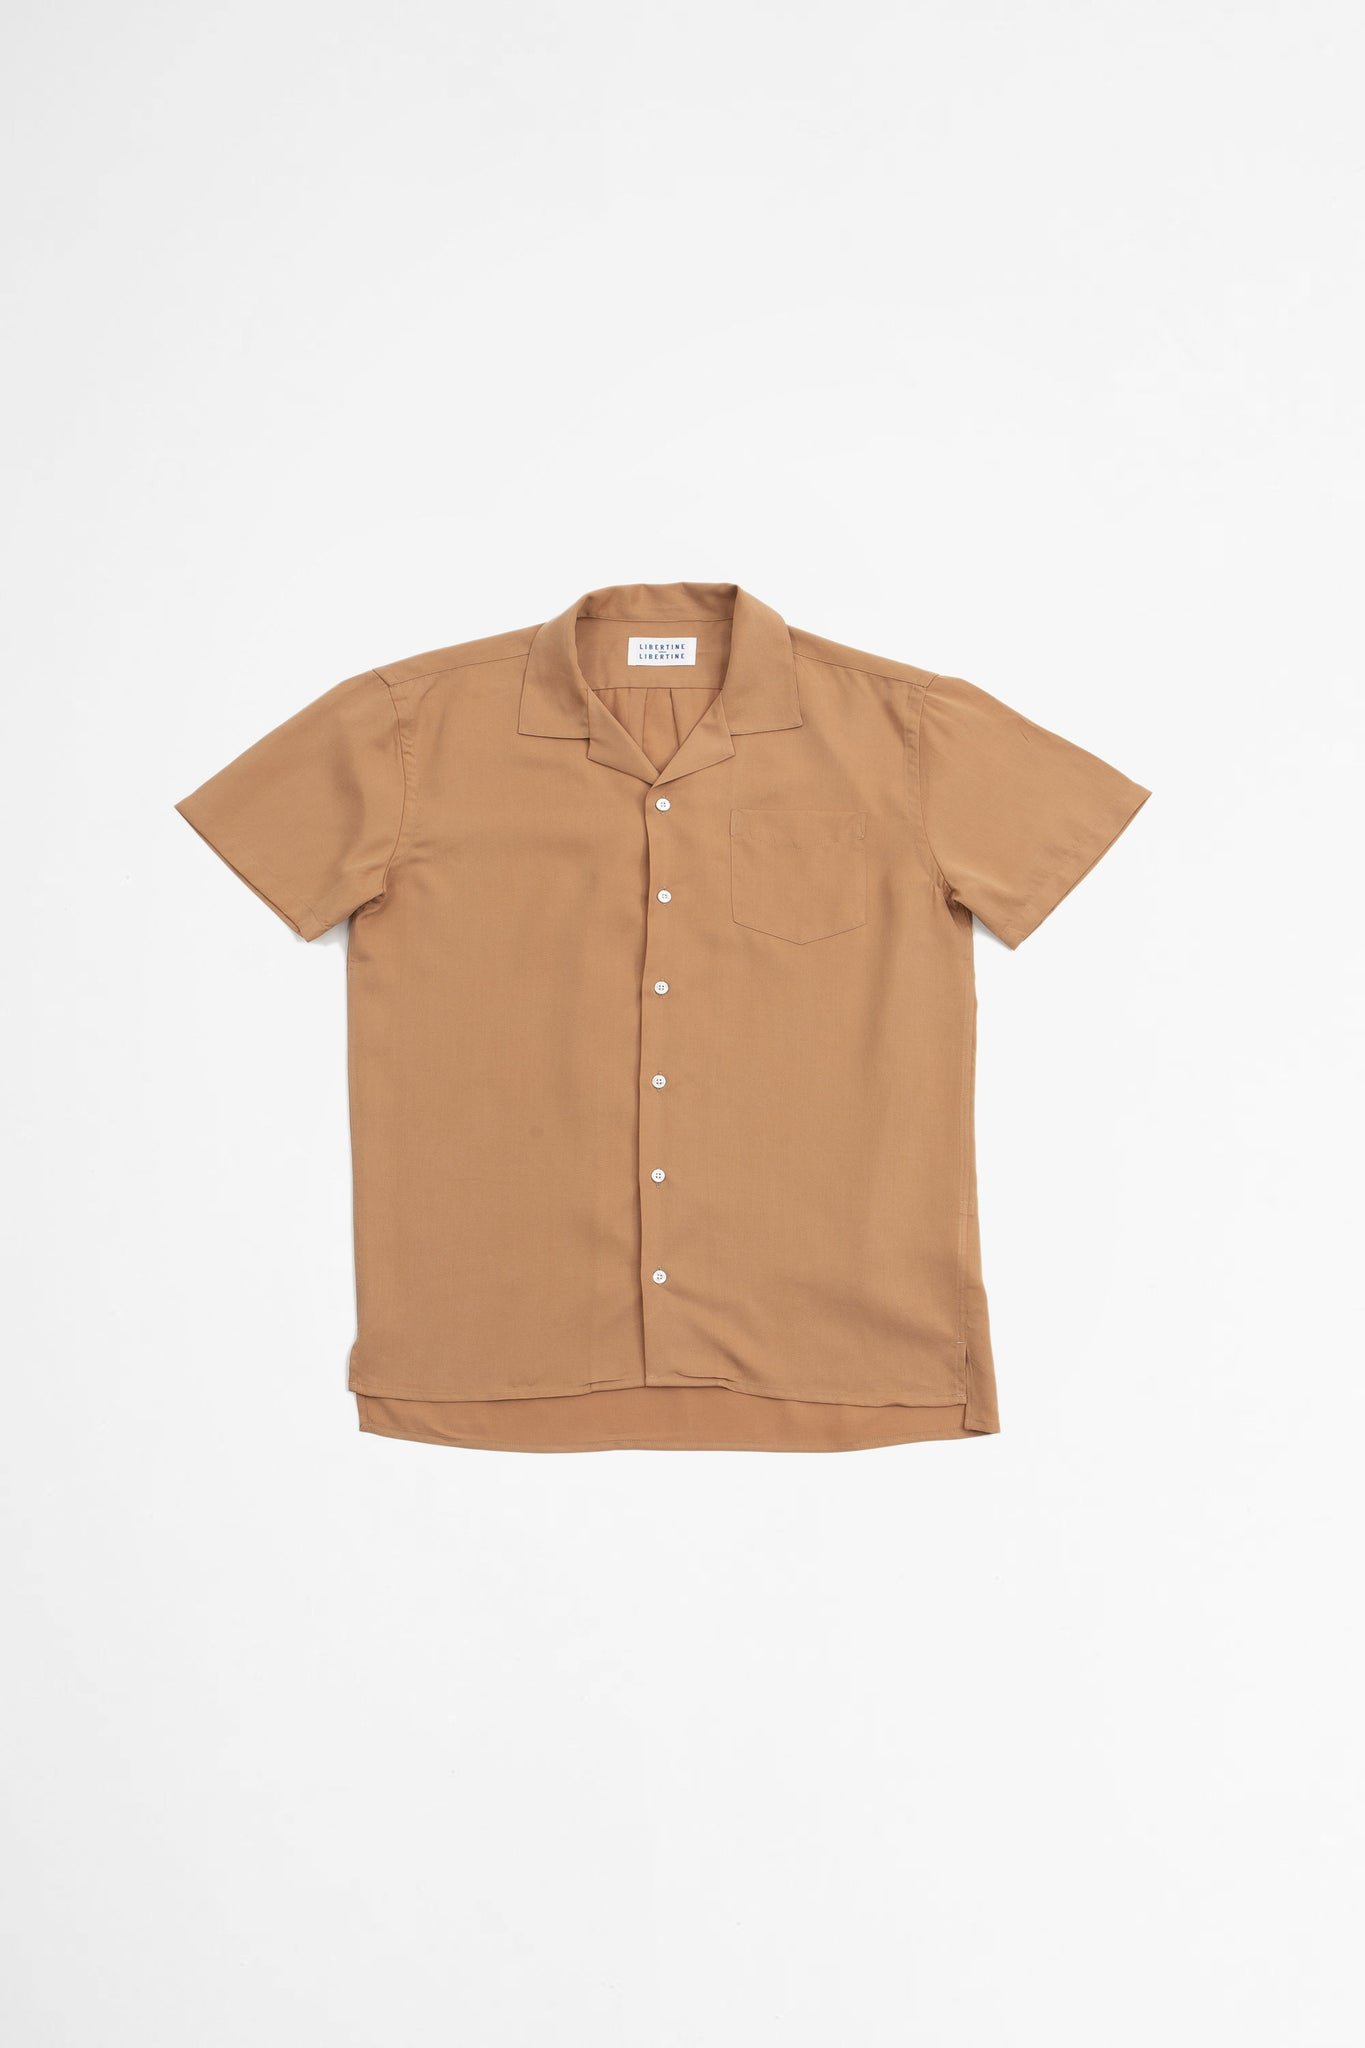 Cave S/S shirt smoked orchid